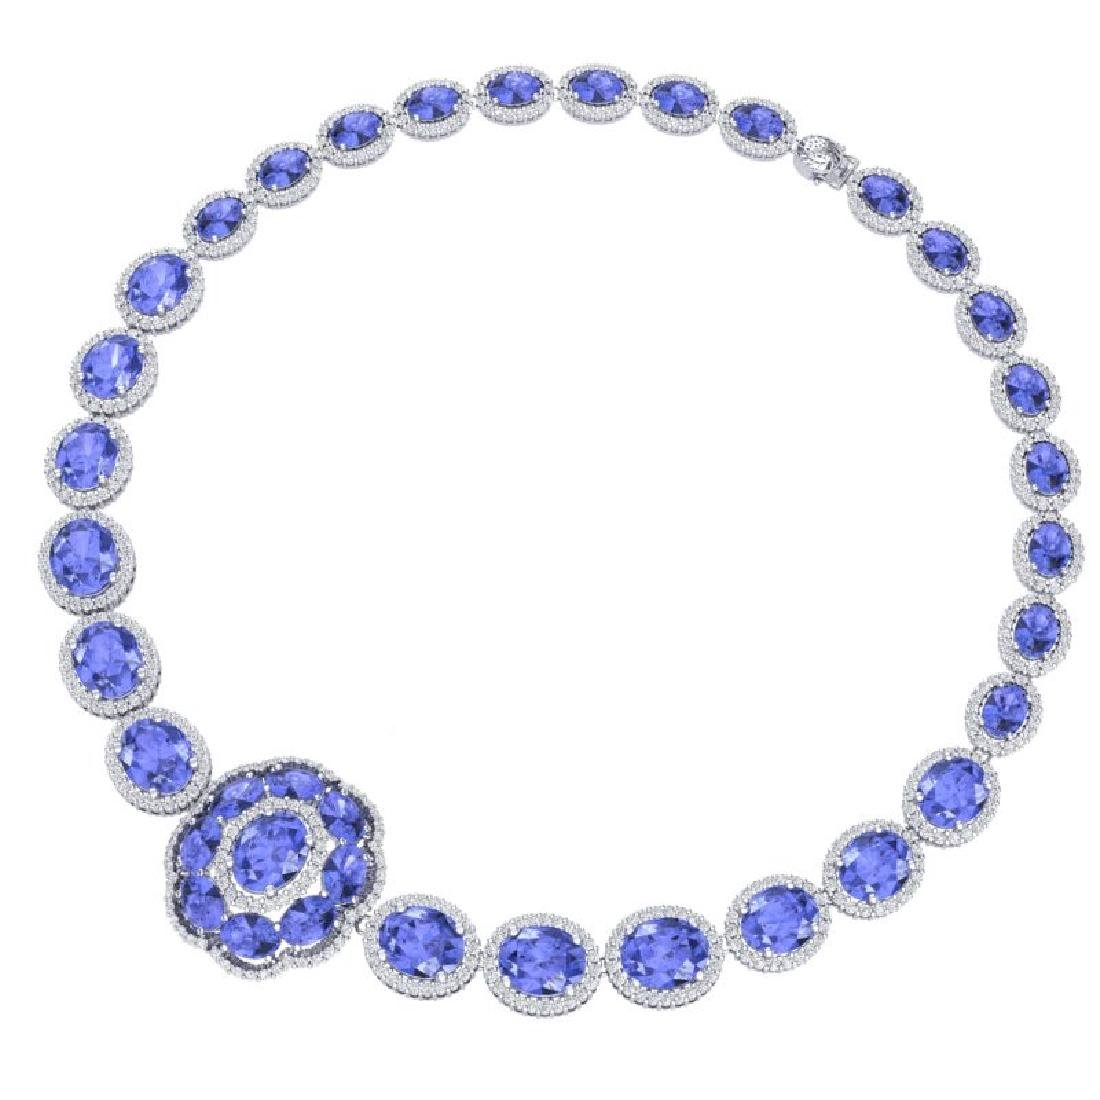 55.84 CTW Royalty Tanzanite & VS Diamond Necklace 18K - 3